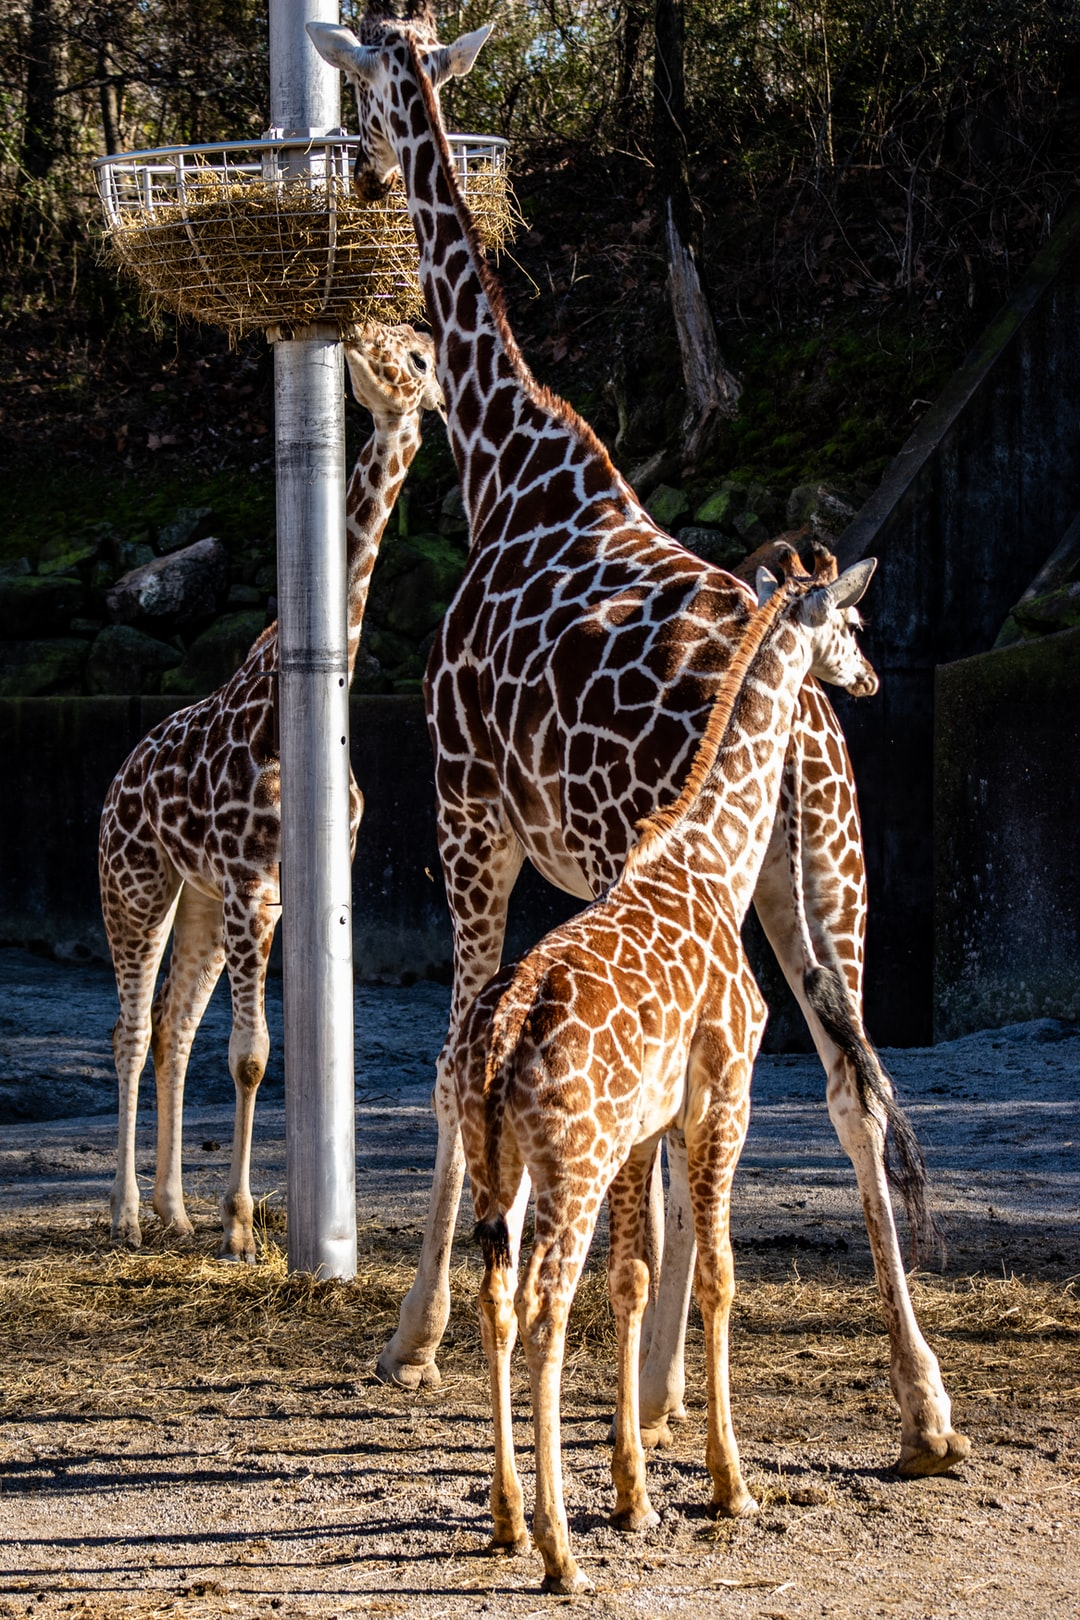 The baby giraffe can't quite reach the food…I guess it will have to find some elsewhere.